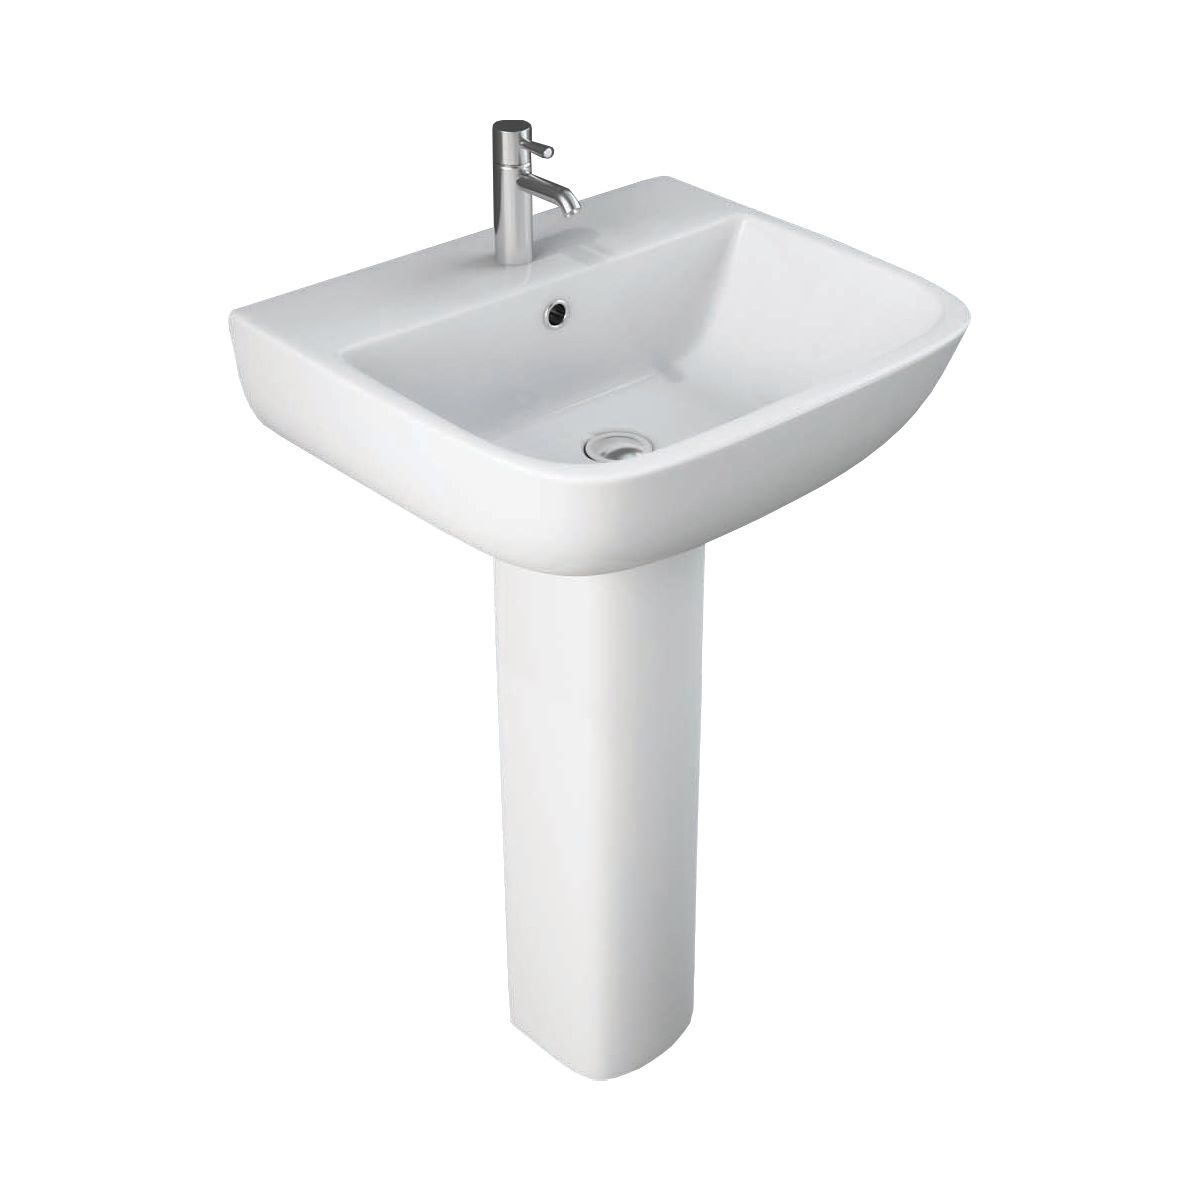 RAK Series 600 1 Tap Hole Basin with Full Pedestal